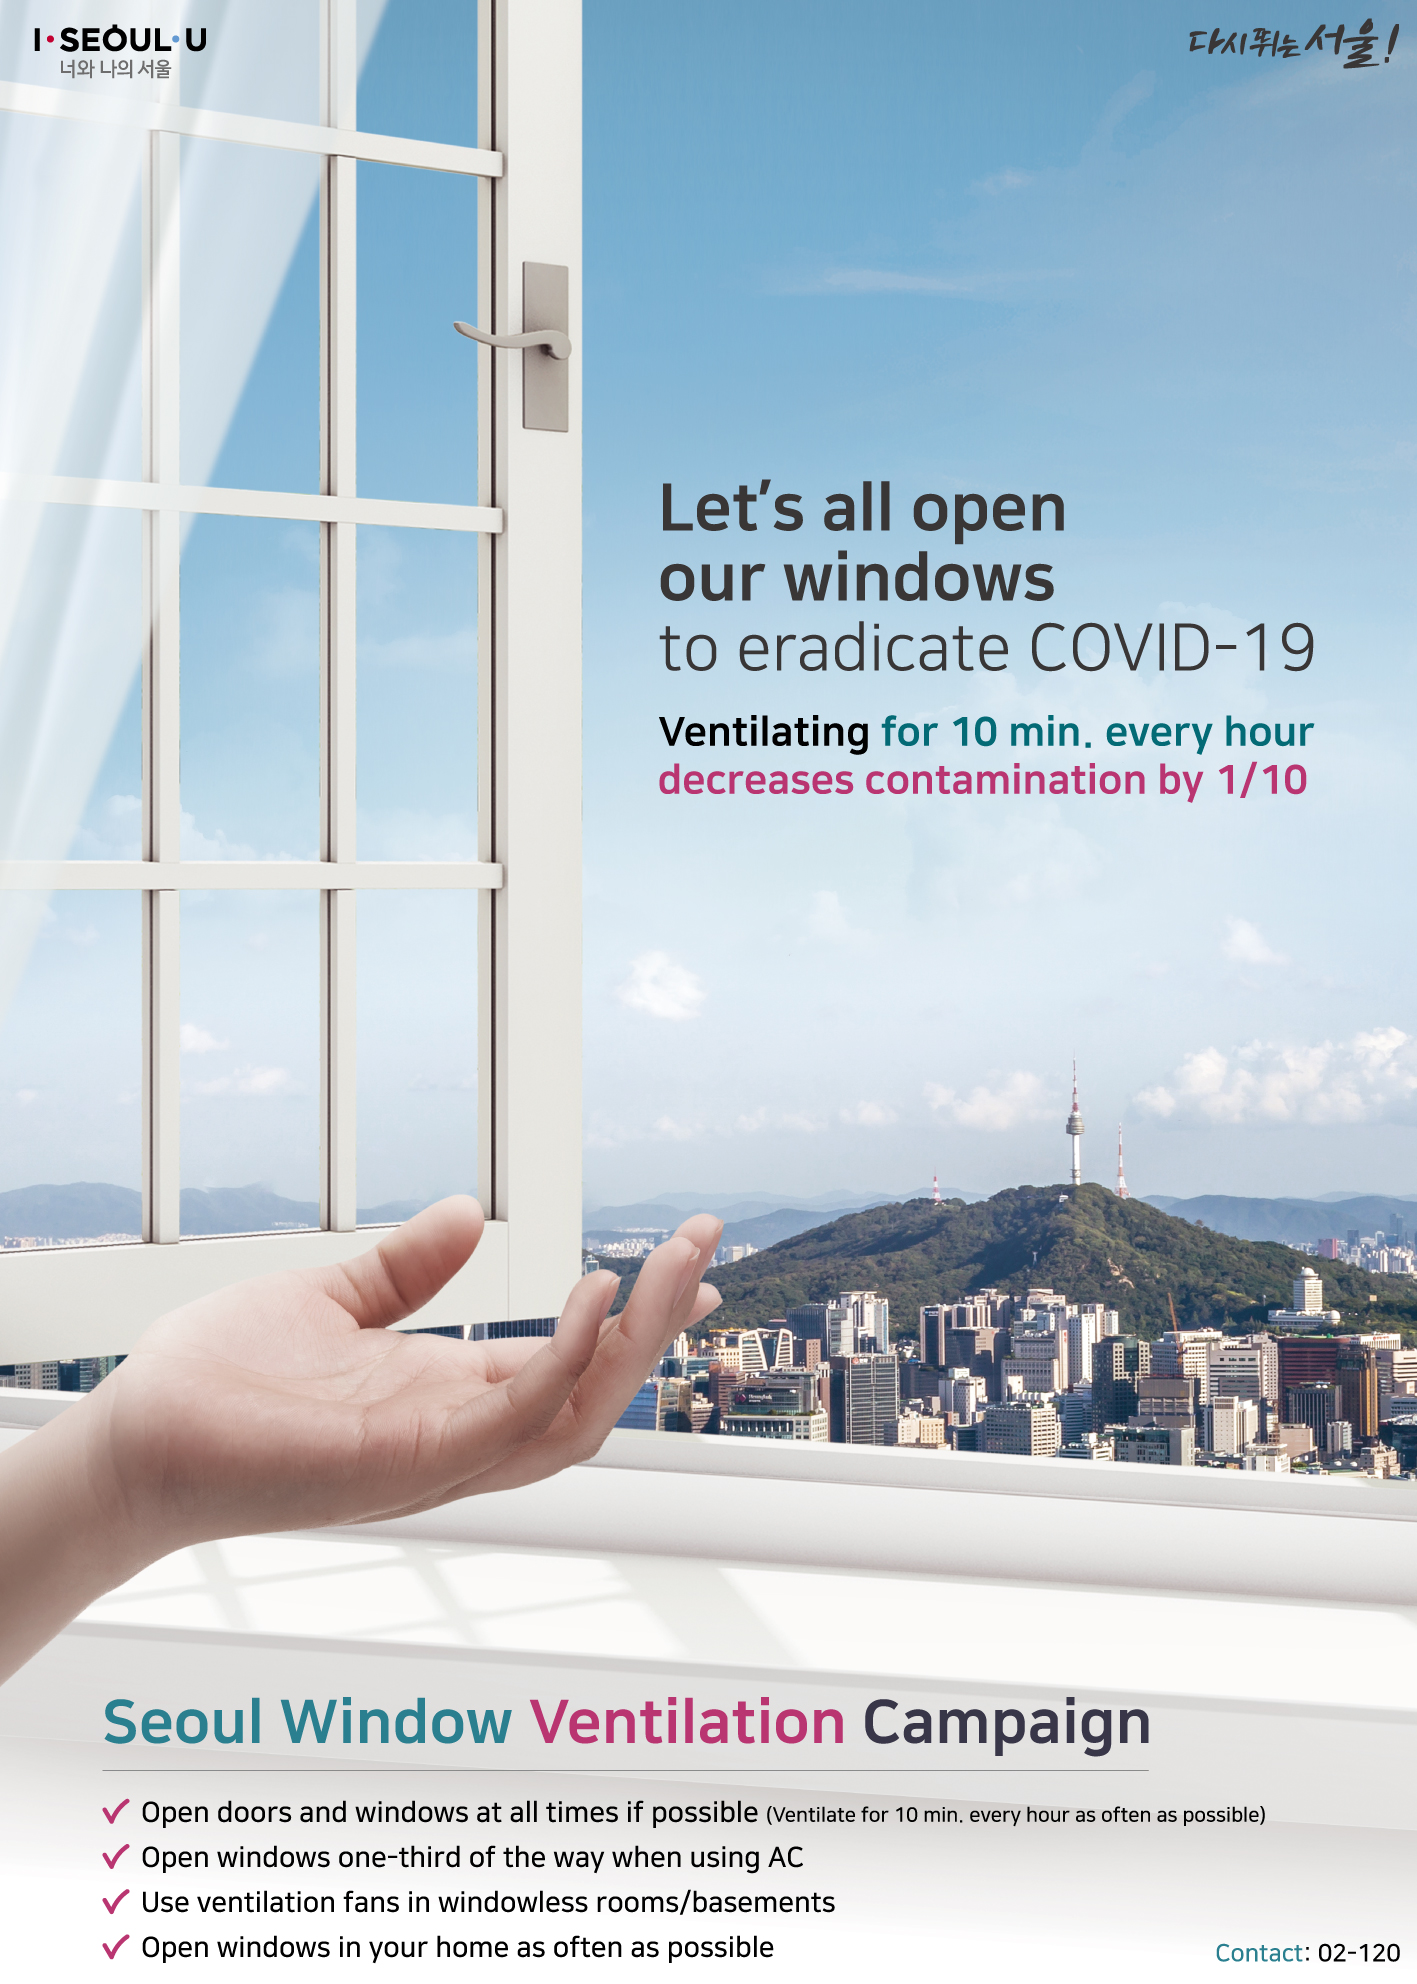 Let's all open our windows to eradicate COVID-19 Ventilating for 10 min. every hour decreases contamination by 1/10 Seoul Window Ventilation Campaign Open doors and windows at all times if possible Ventilate for 10 min. every hour as often as possible Open windows one-third of the way when using AC Use ventilation fans in windowless rooms/basements Open windows in your home as often as possible Contact: 02-120